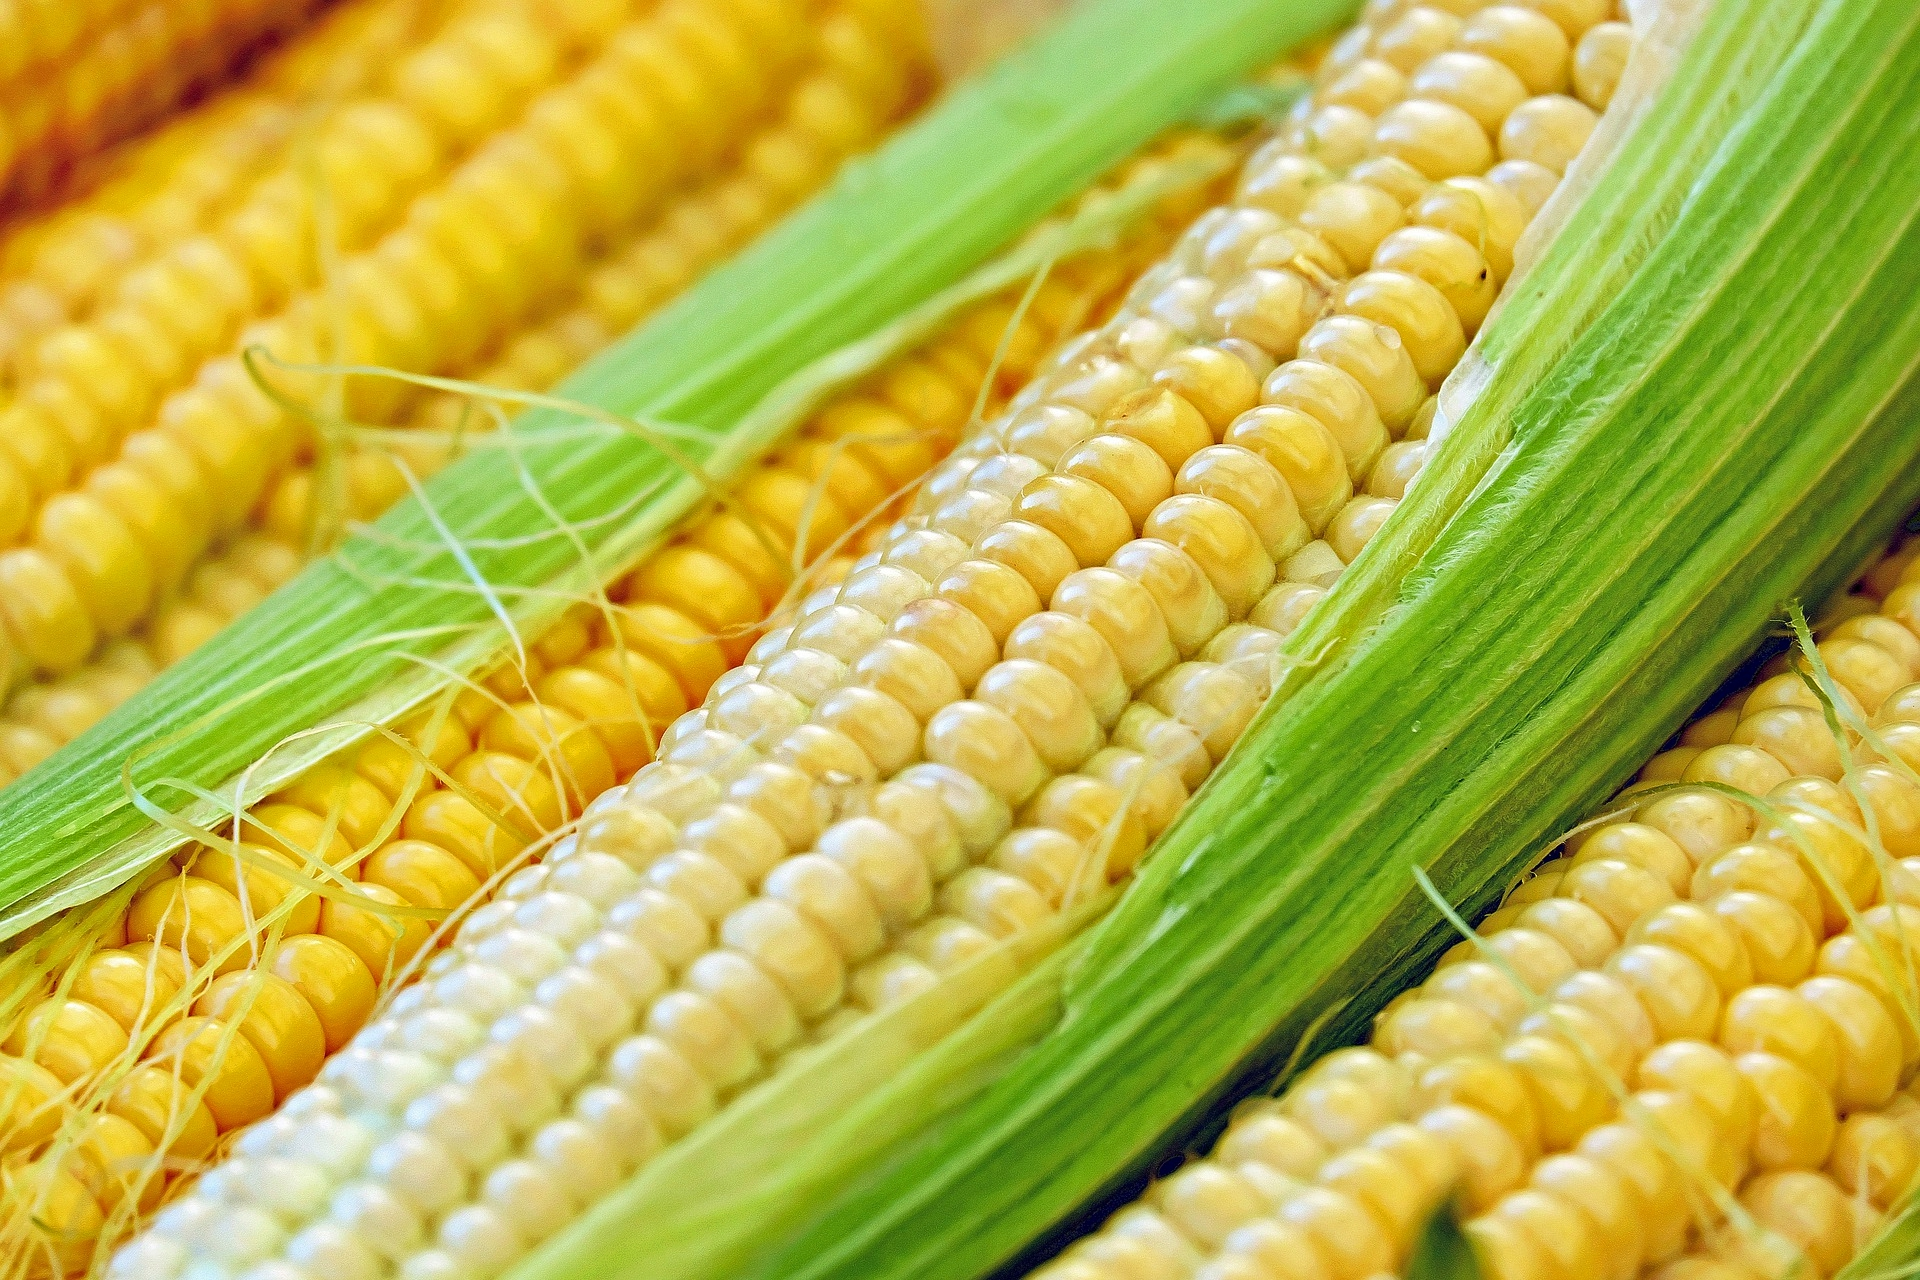 Sweet Corn: Planting, Growing, and Harvesting Sweet Corn | The Old